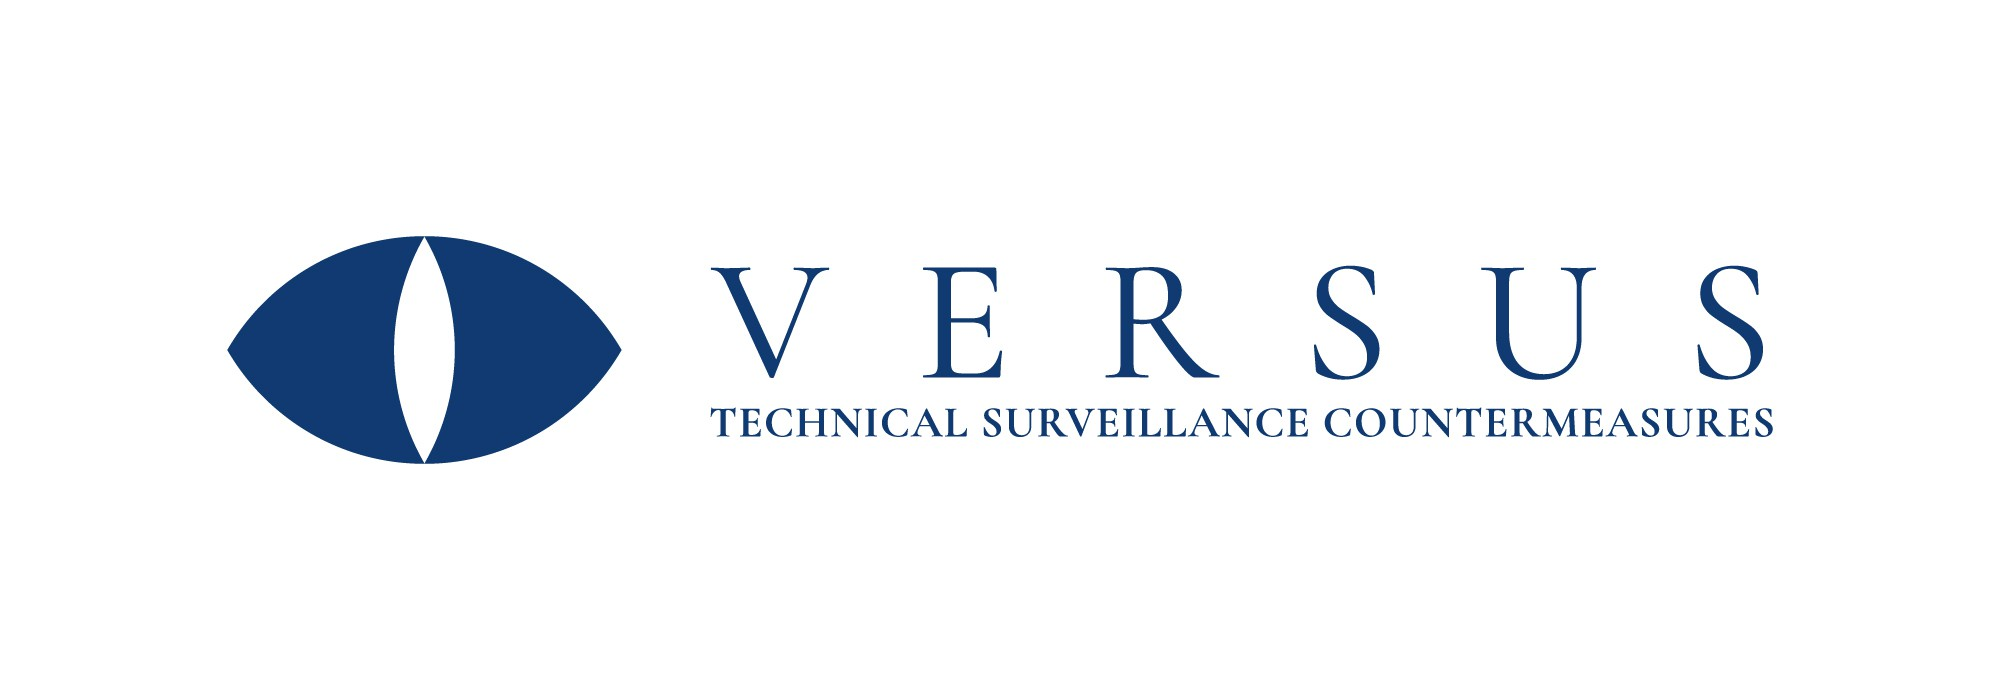 Professional security consulting firm needs logo & biz card